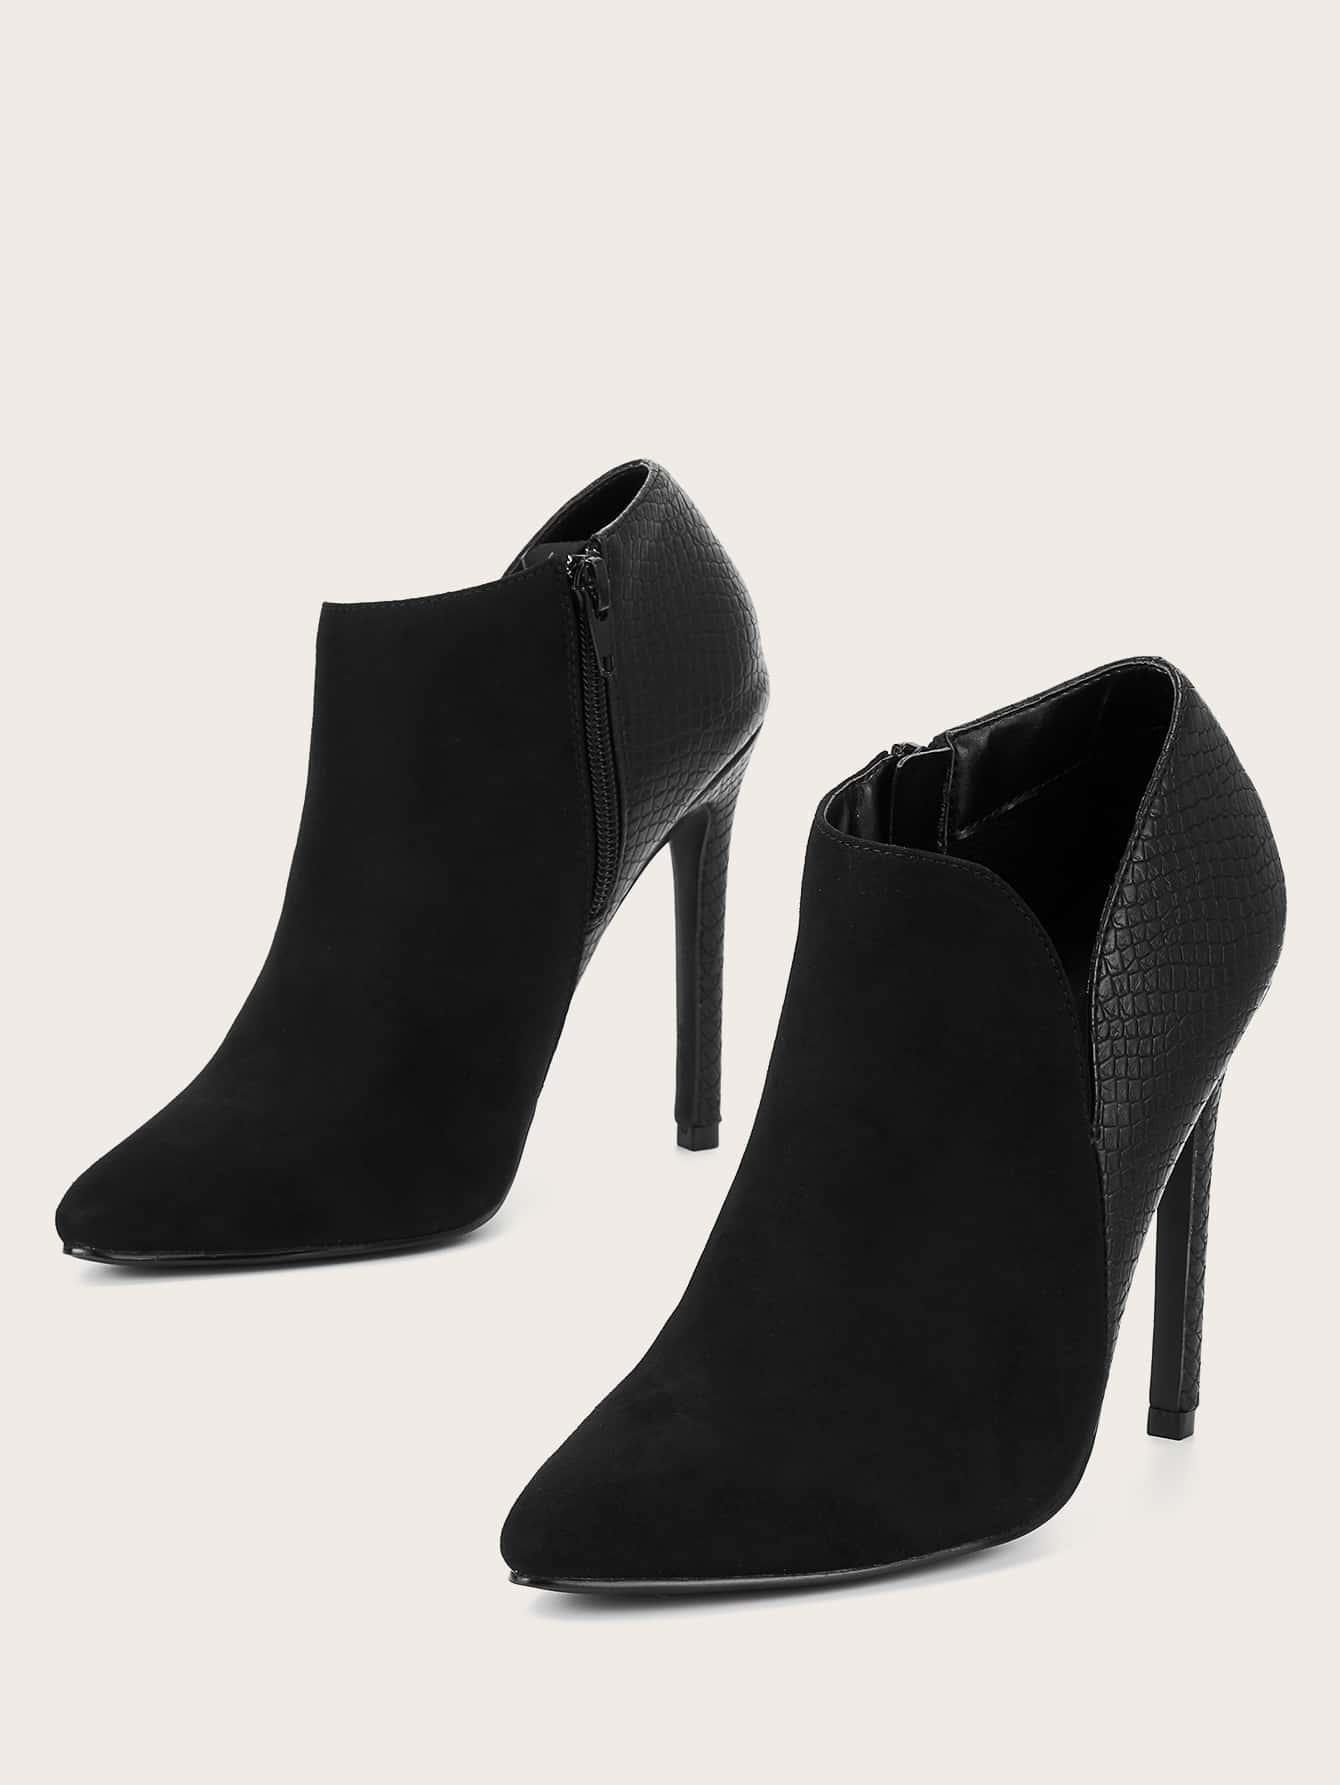 Suede Point Toe Stiletto Heeled Booties